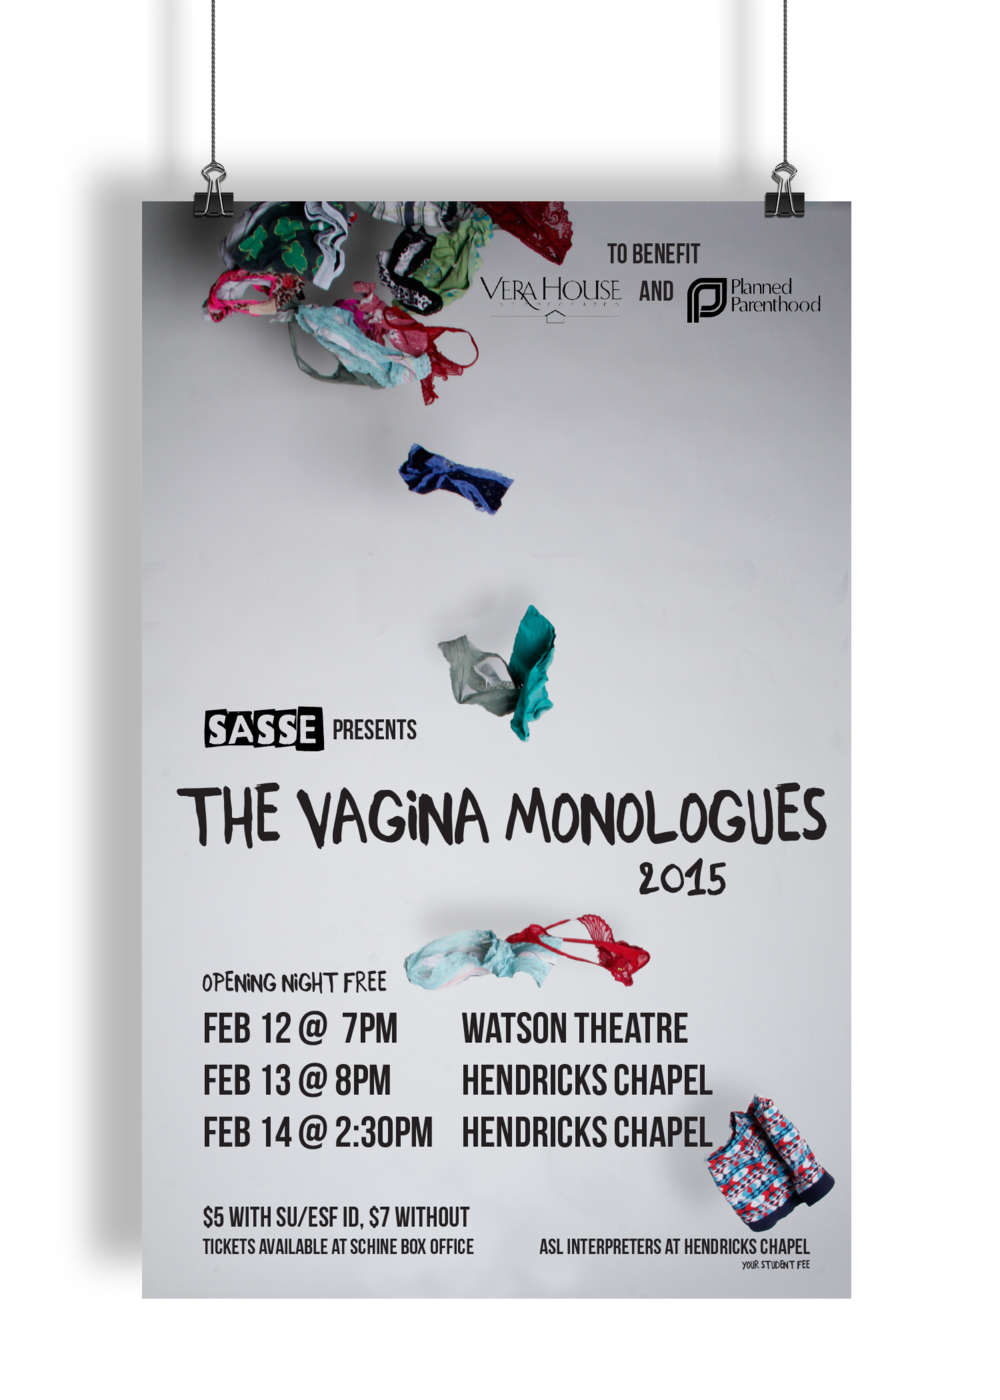 Interesting question vagina monologues committee with